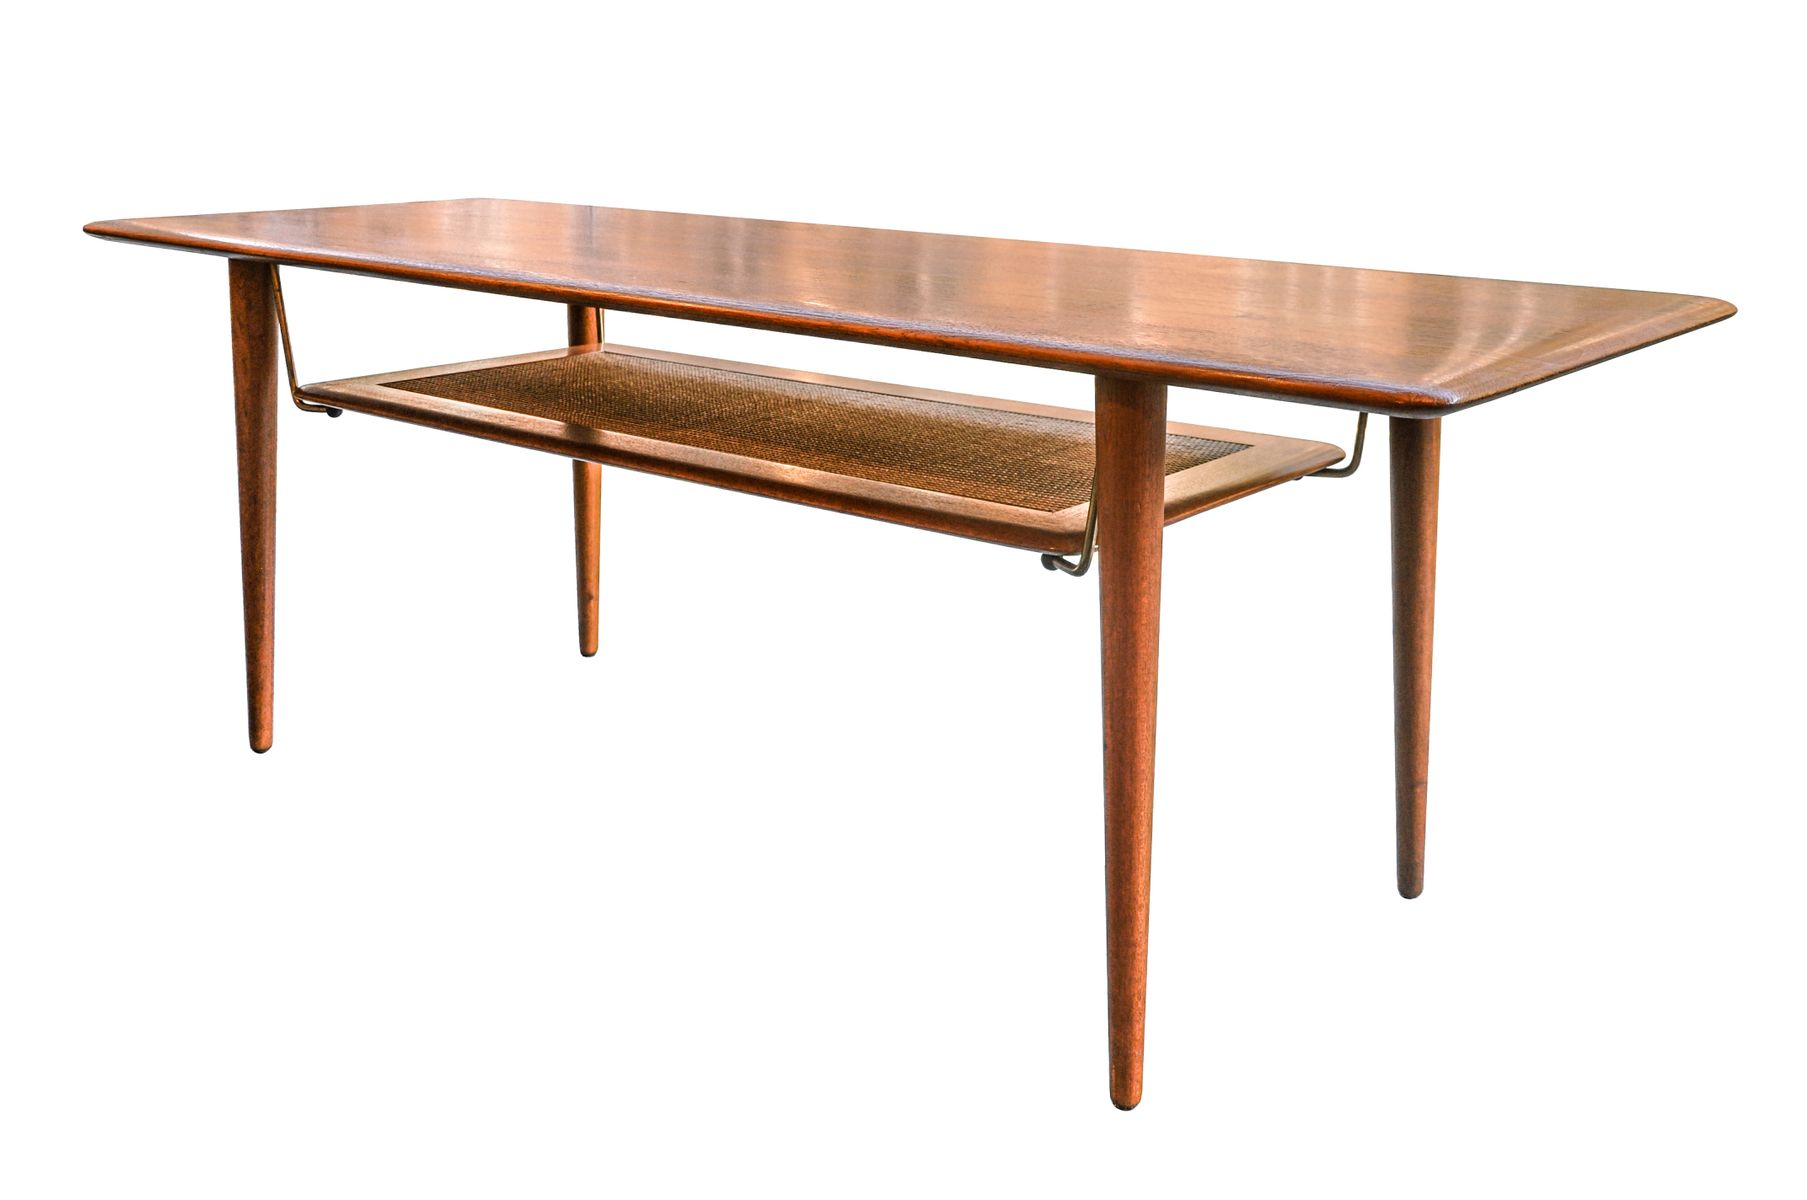 Model 516 Teak Coffee Table by Peter Hvidt & Orla M¸lgaard Nielsen